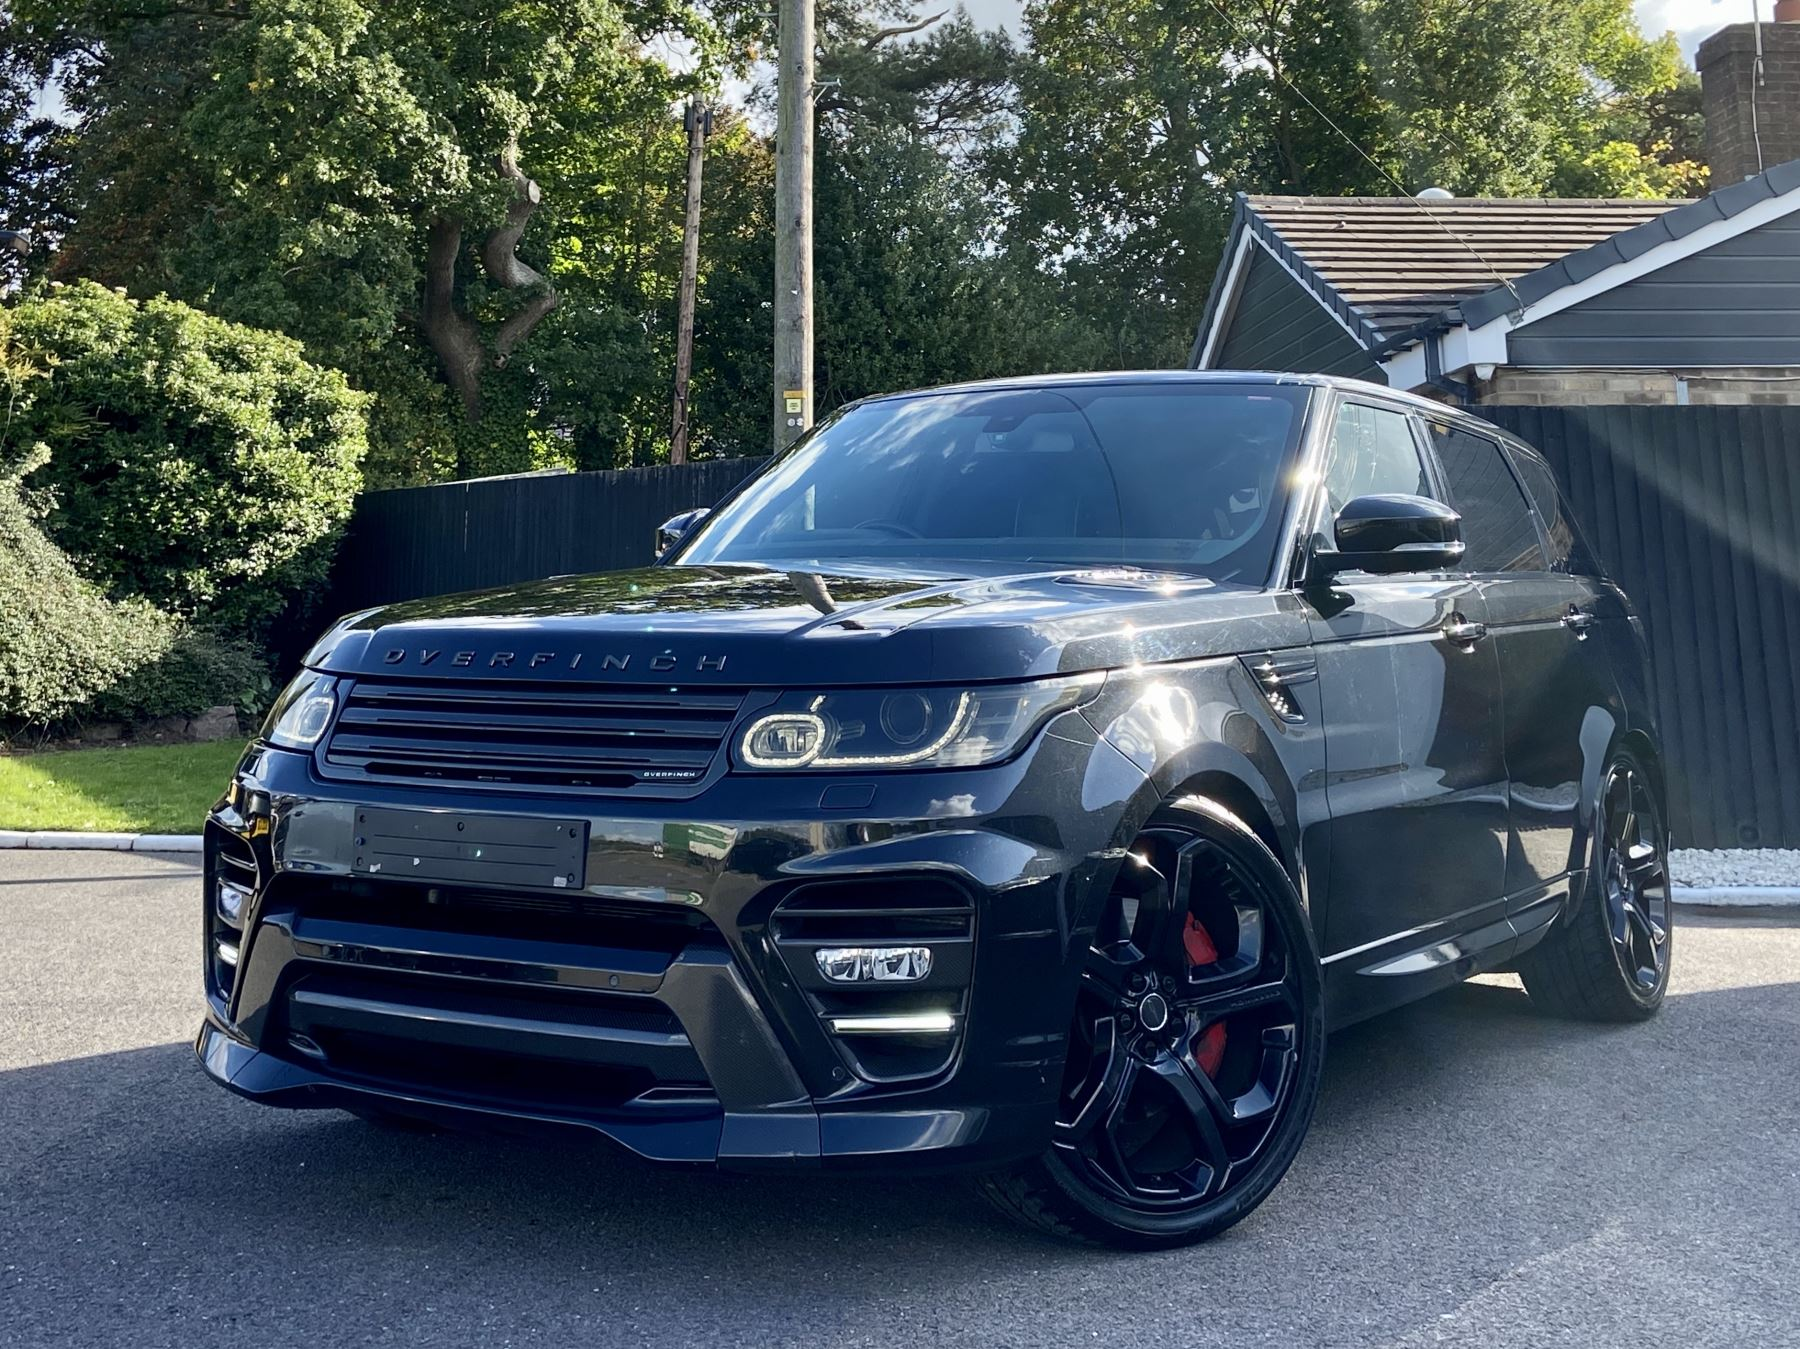 Land Rover Range Rover Sport 3.0 SDV6 [306] Autobiography Dynamic 5dr - OVERFINCH  Diesel Automatic Estate (2016)